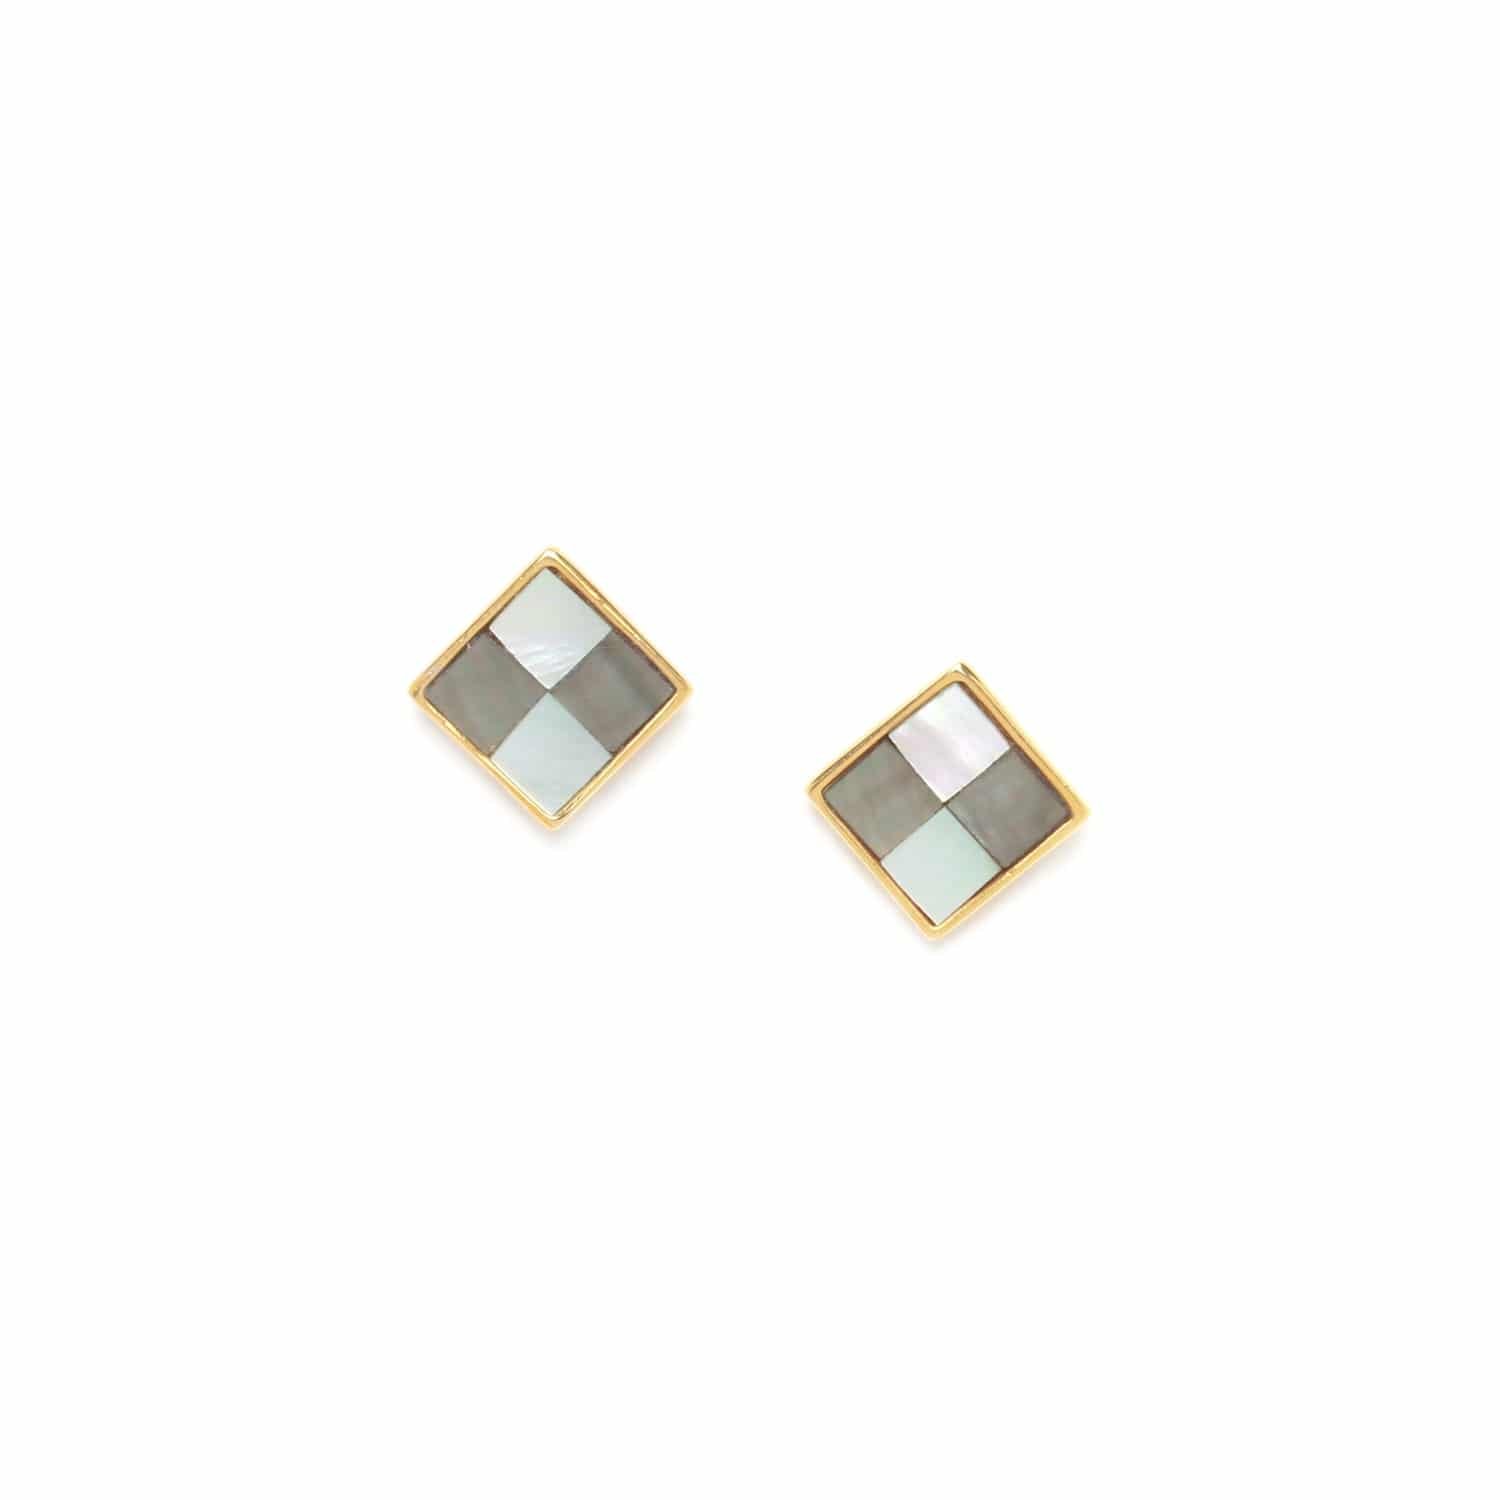 LE SQUARE square post earrings